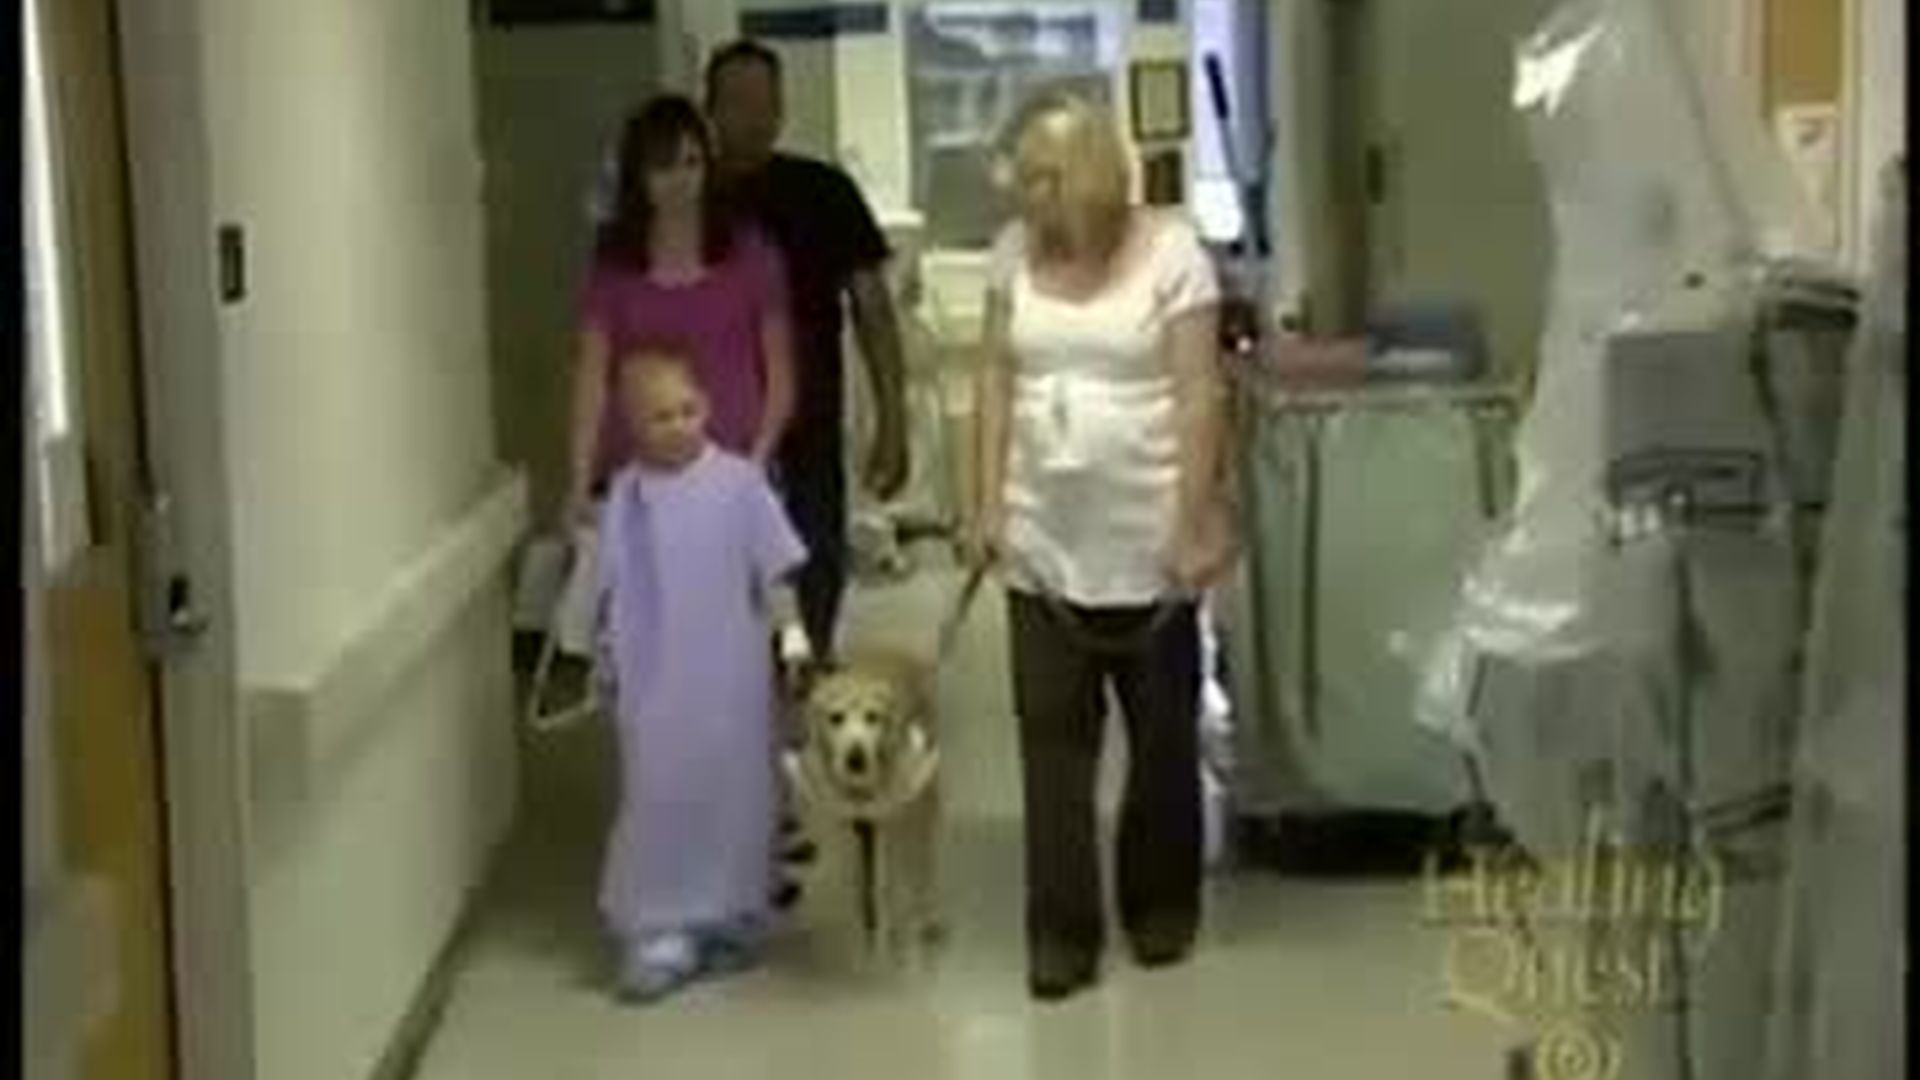 Canine Therapy  (7:44)